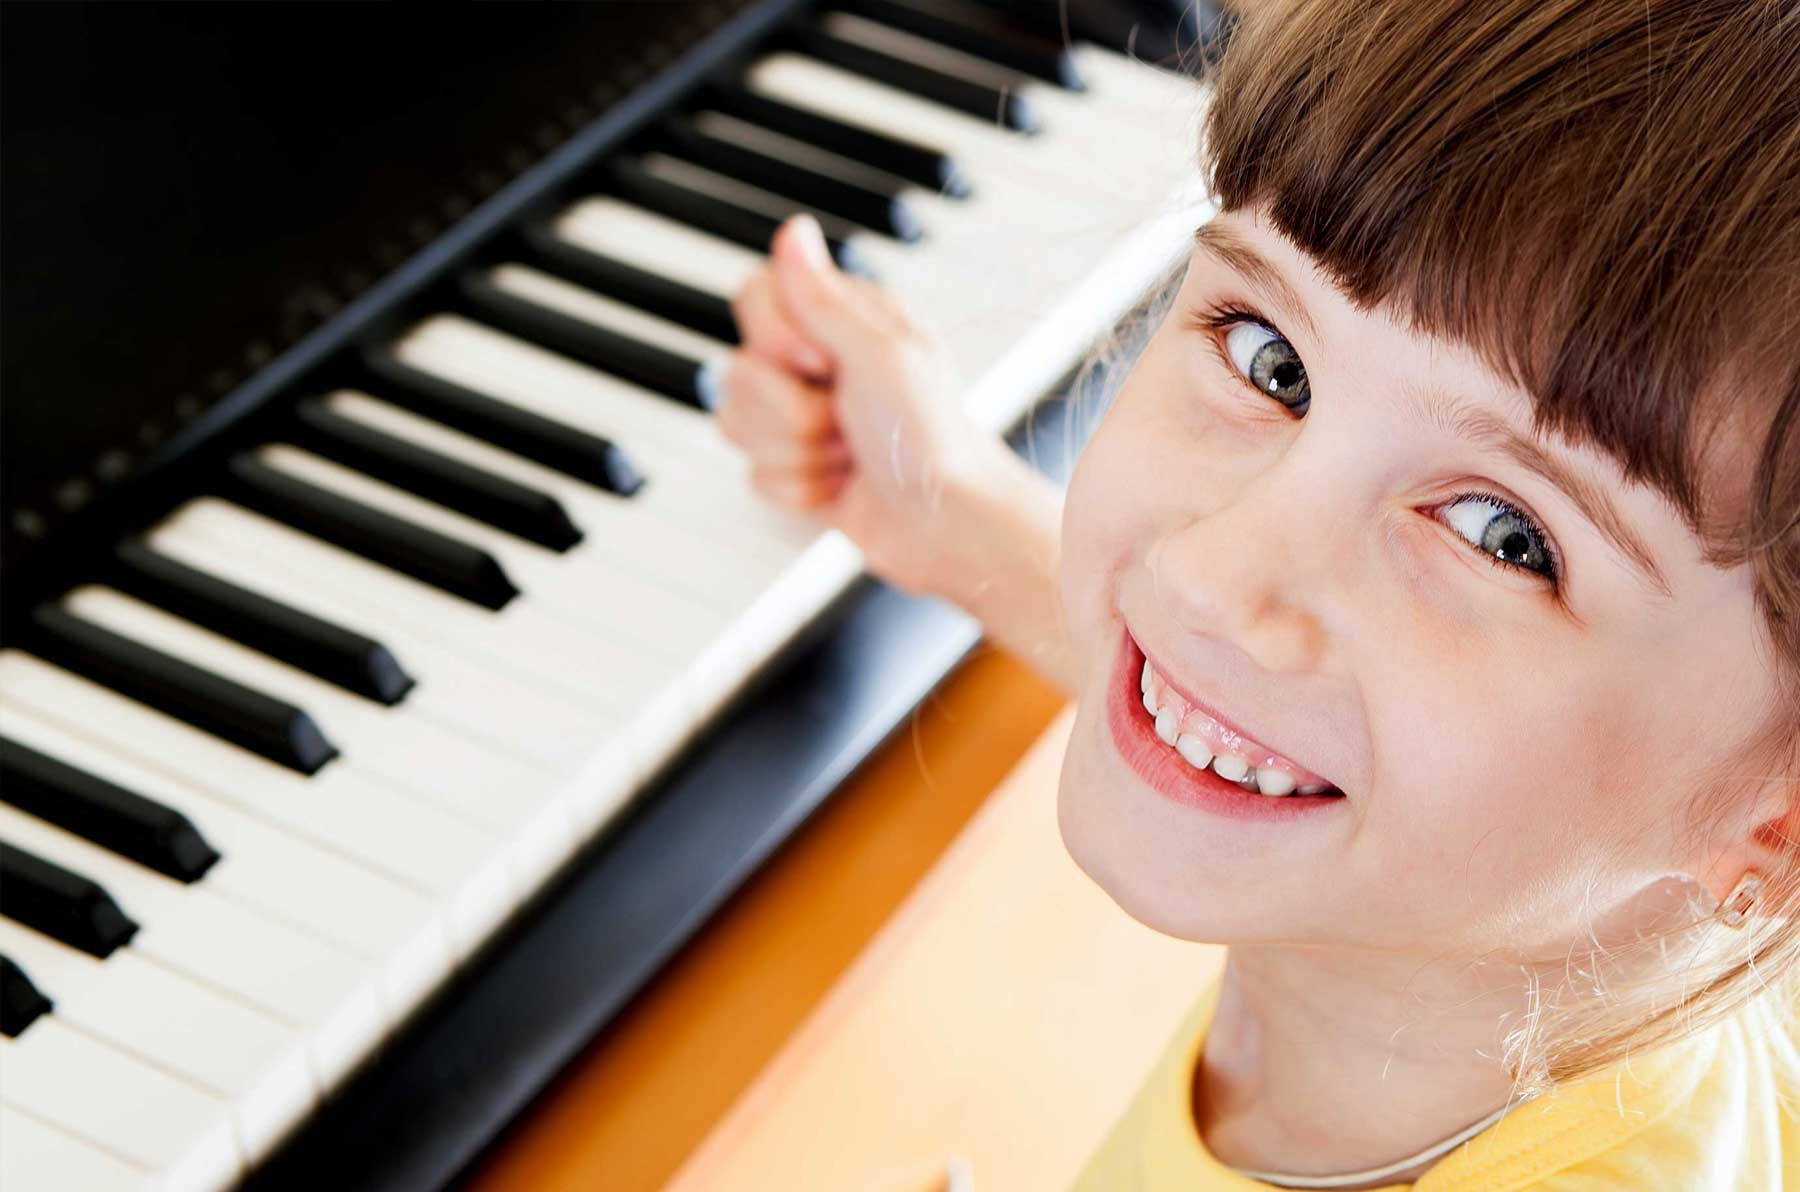 Piano Lessons in Winter Park and Orlando